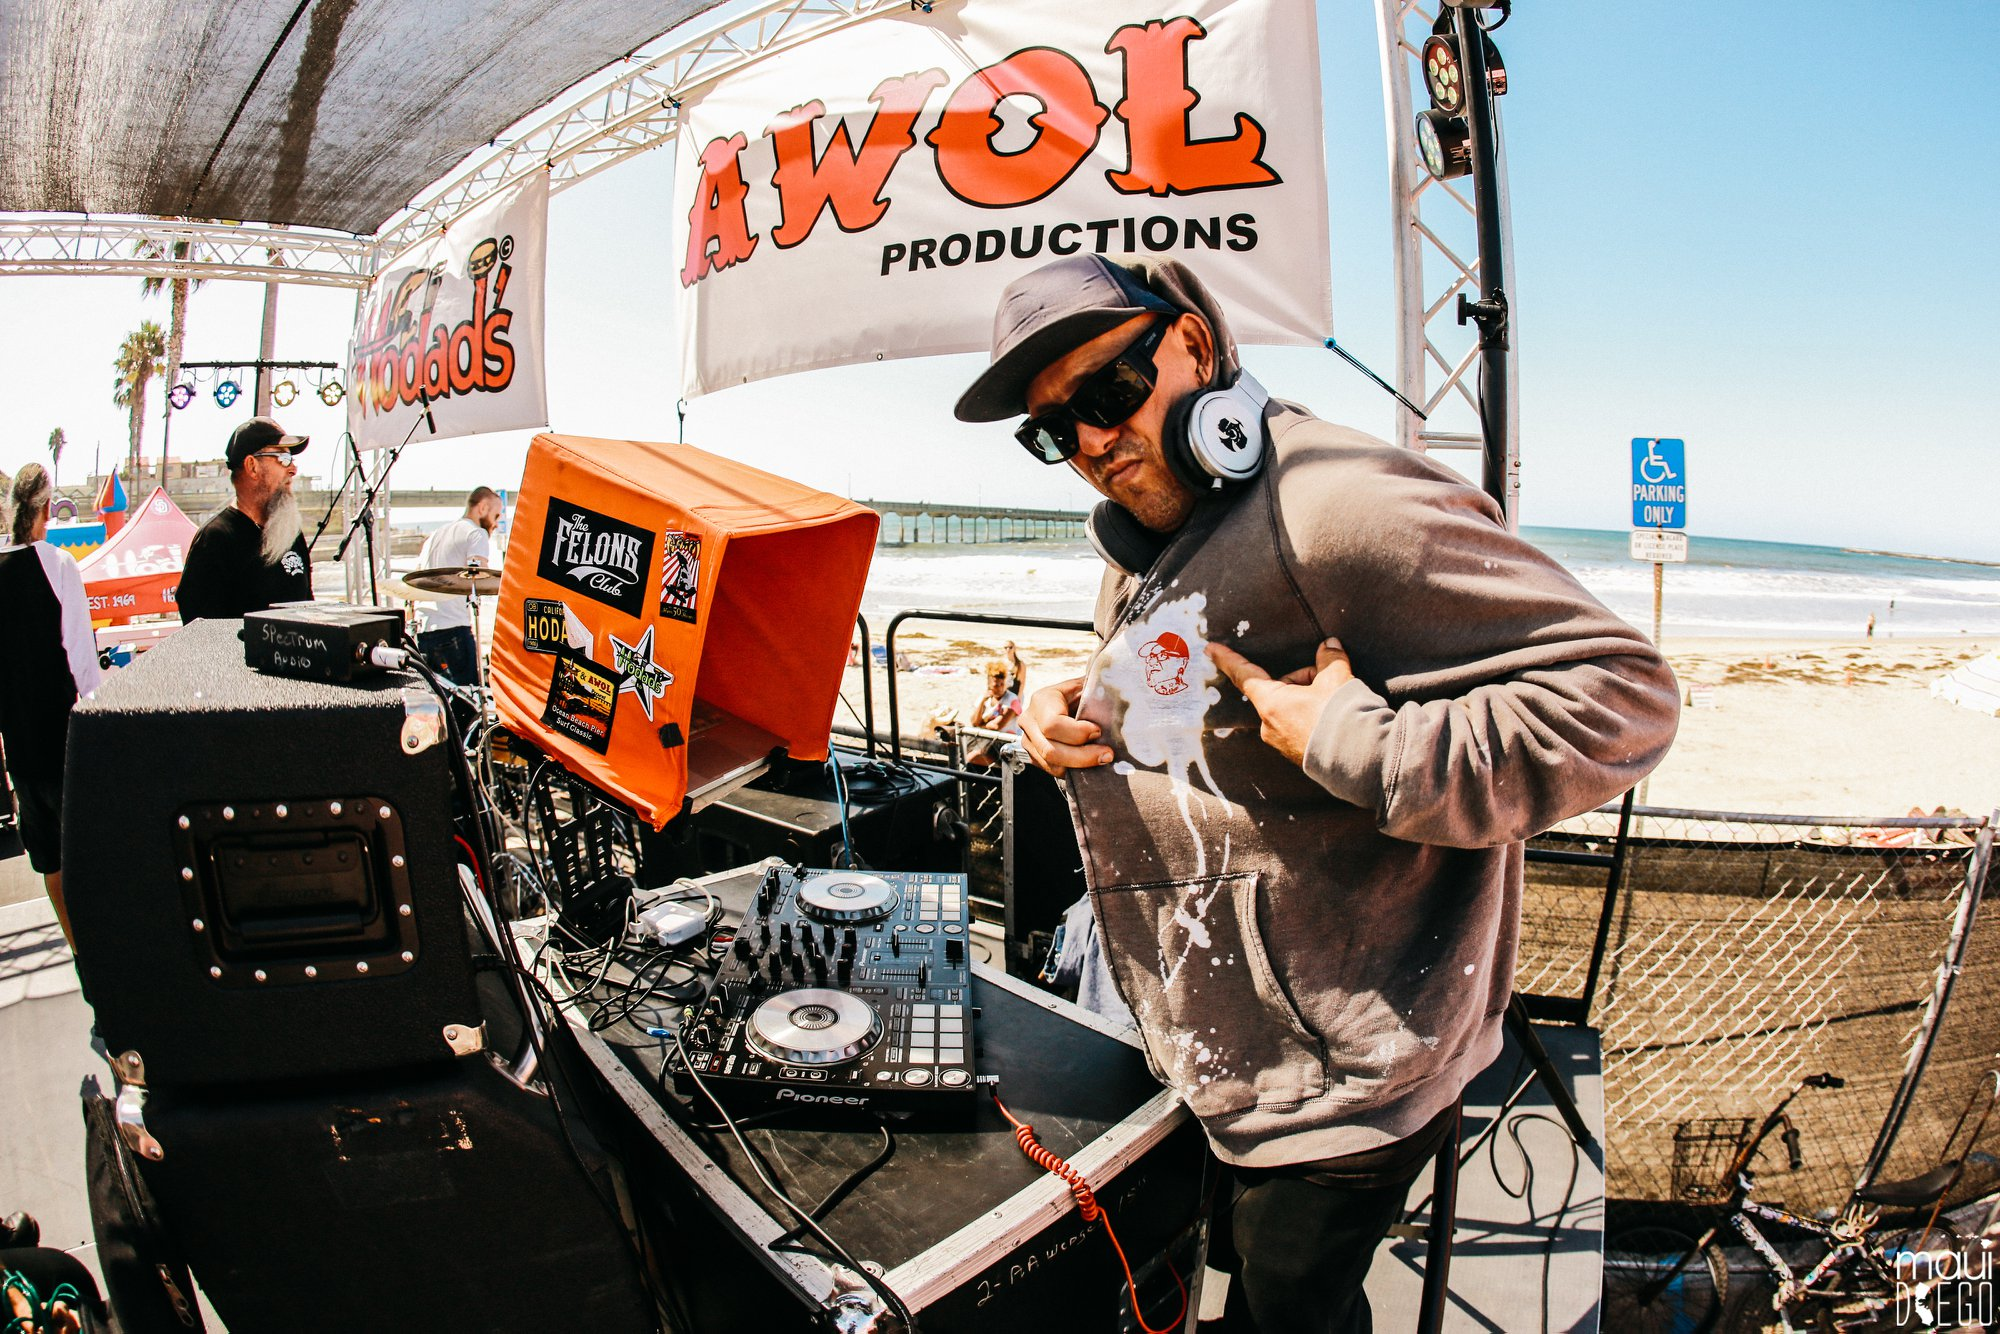 Hodads 50th Anniversary DJ Product